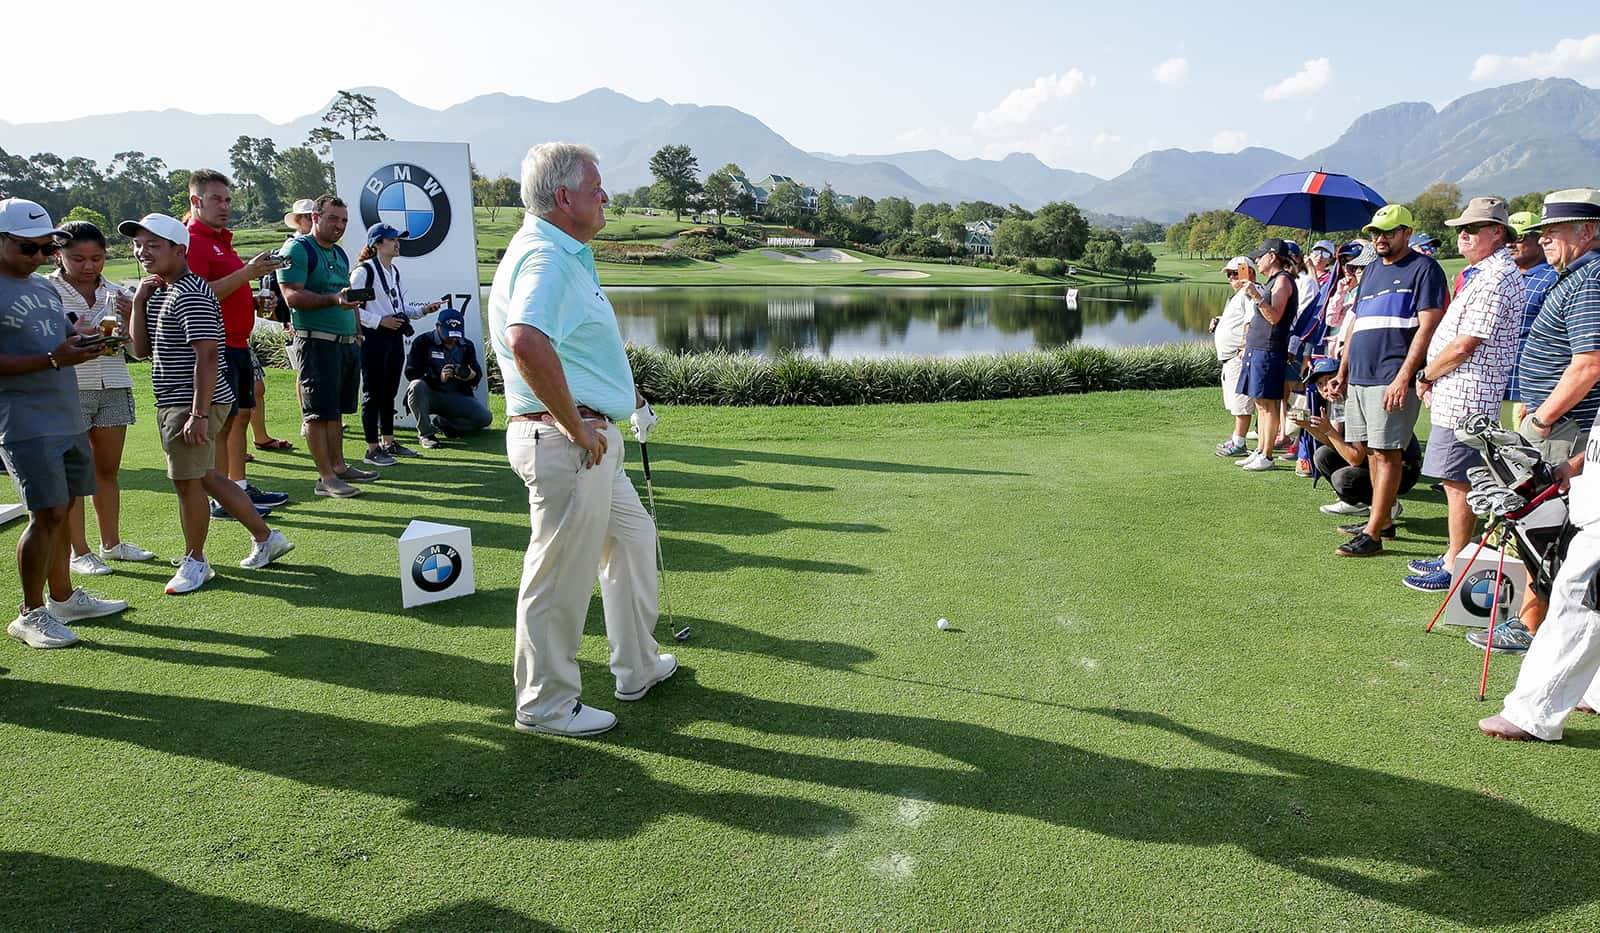 BMW Golf Cup International Weltfinale. Colin Montgomerie Golf Clinic